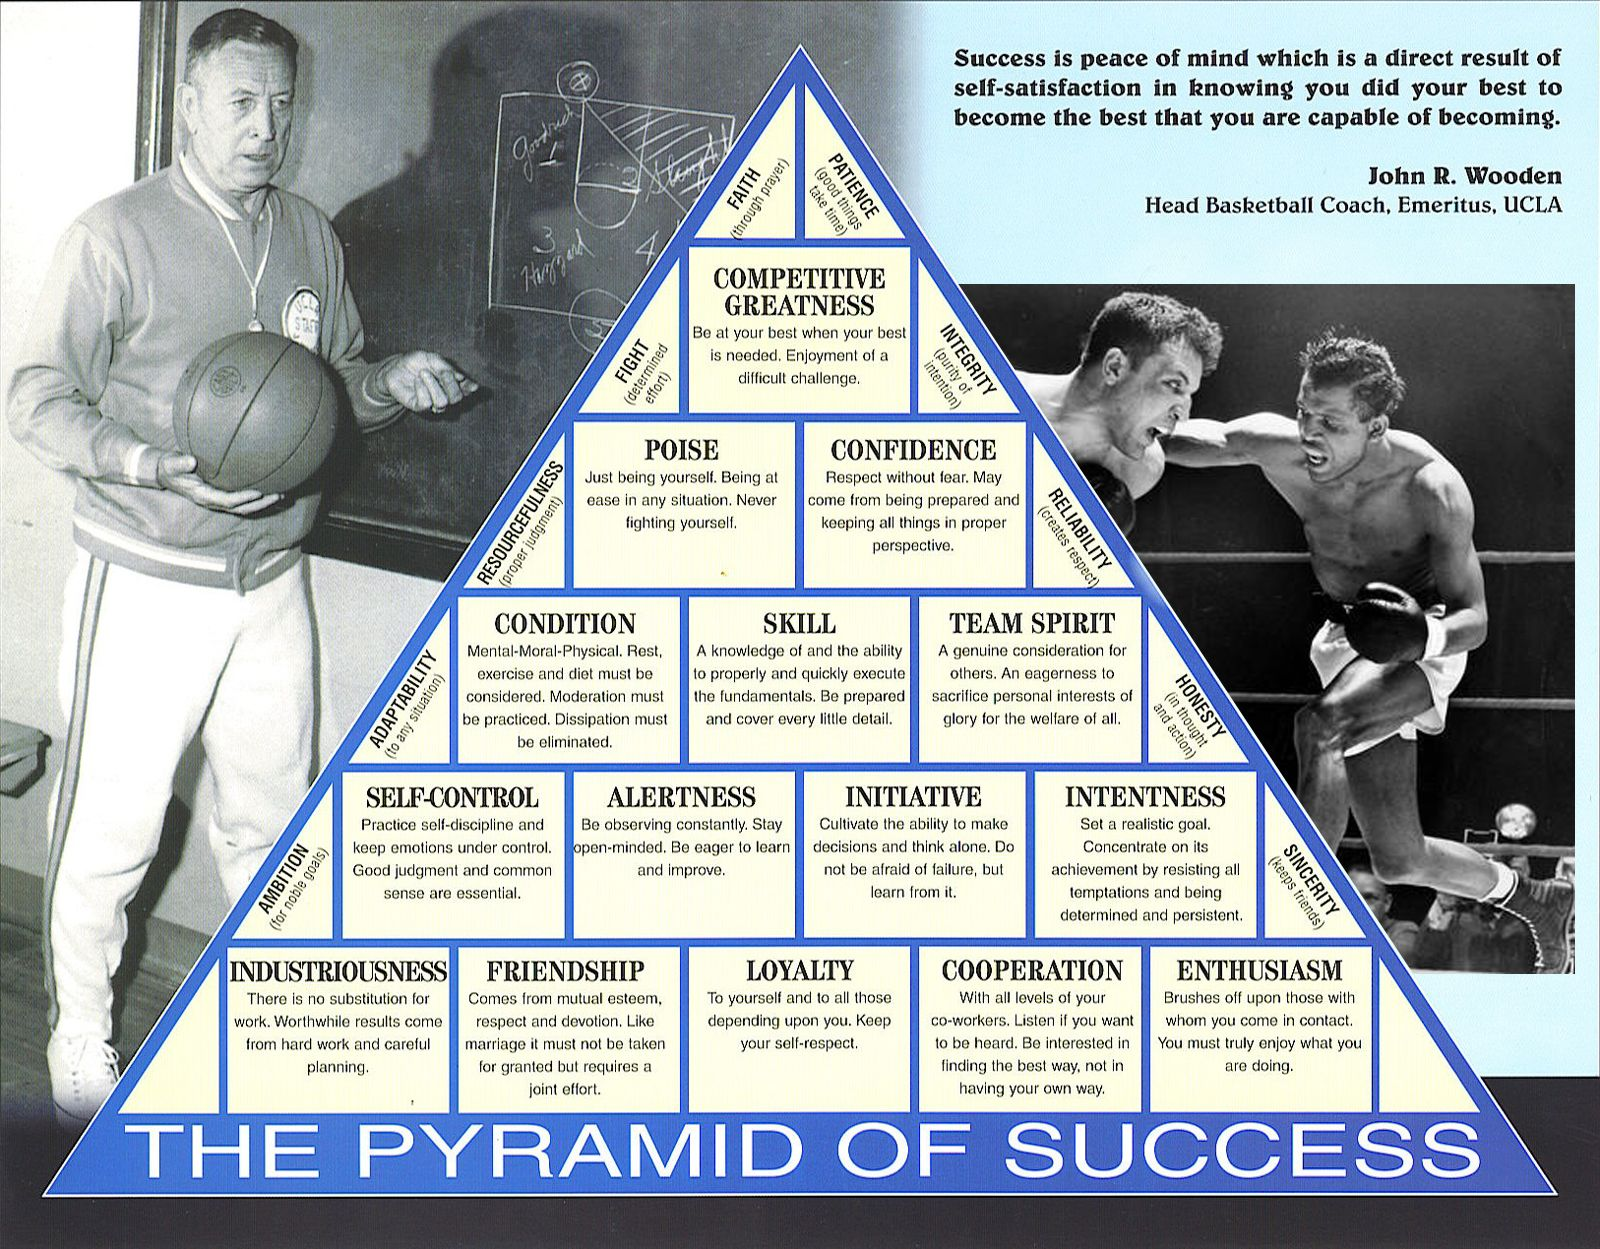 photograph about John Wooden Pyramid of Success Printable named John Wood Pyramid of Achievement Estimates Pyramid of achievement